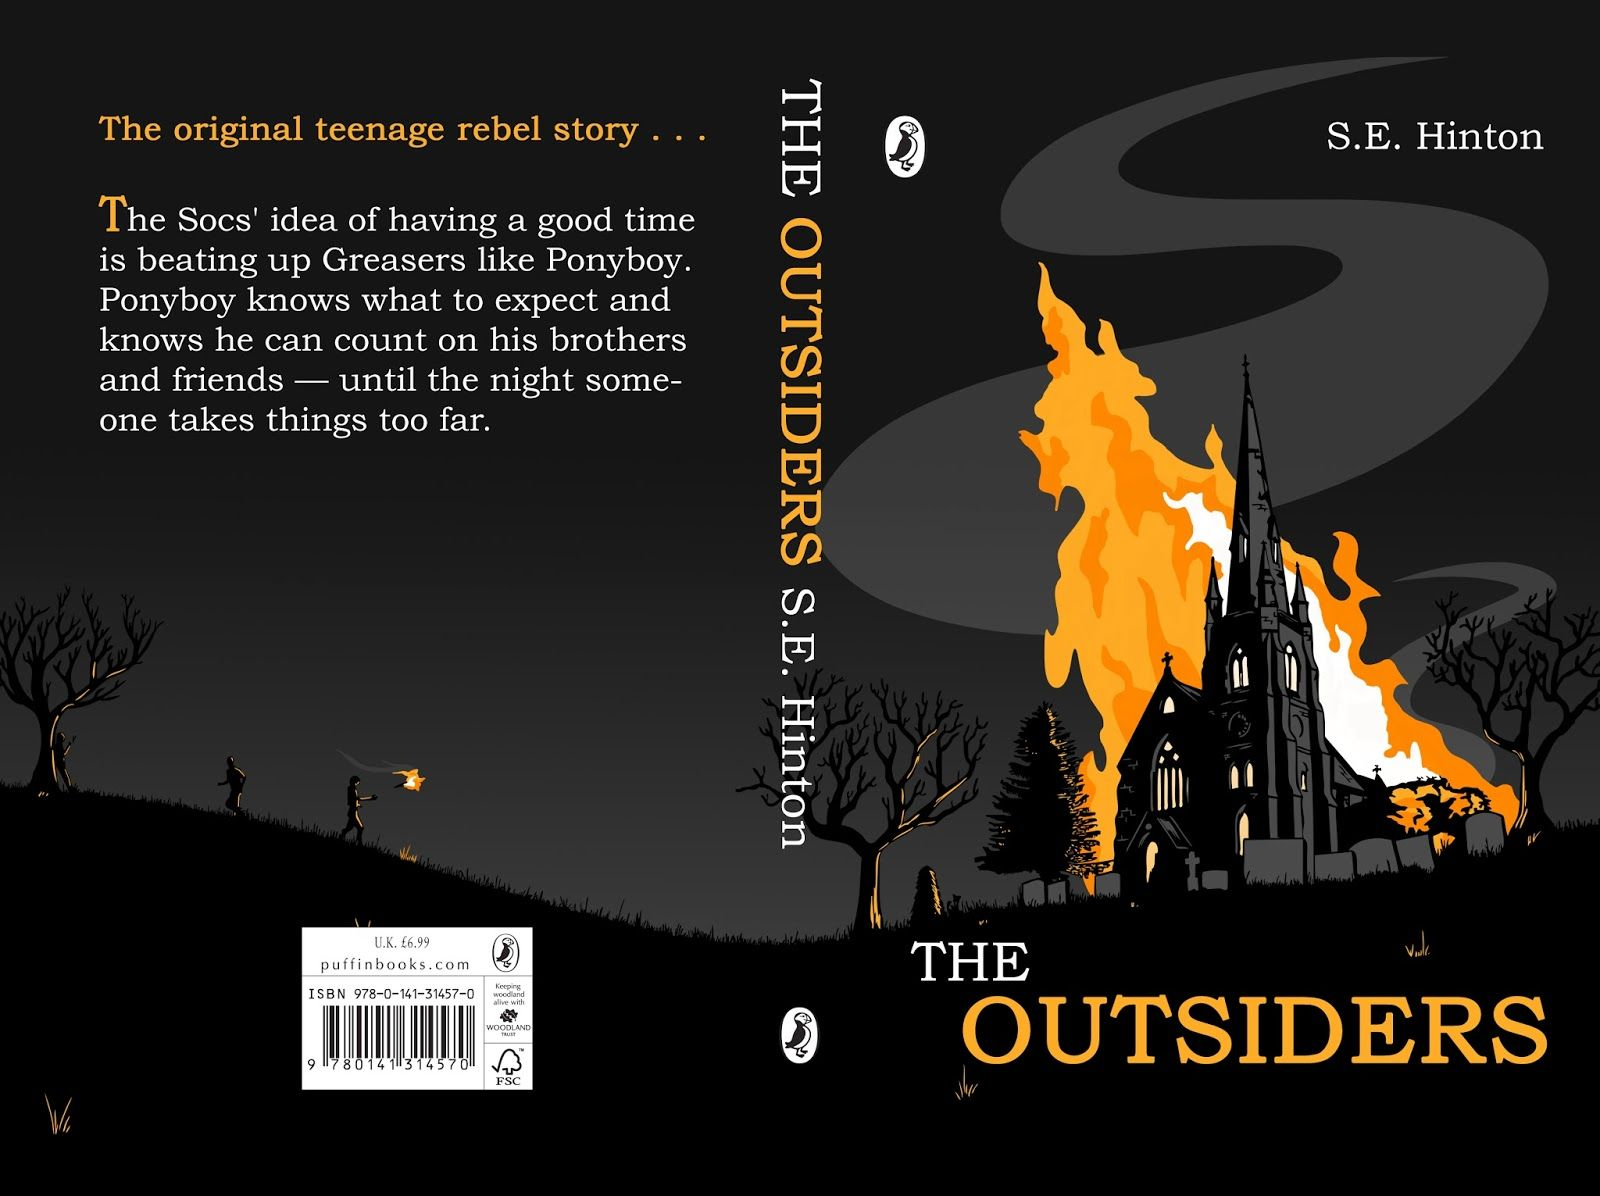 book cover ideas for the outsiders